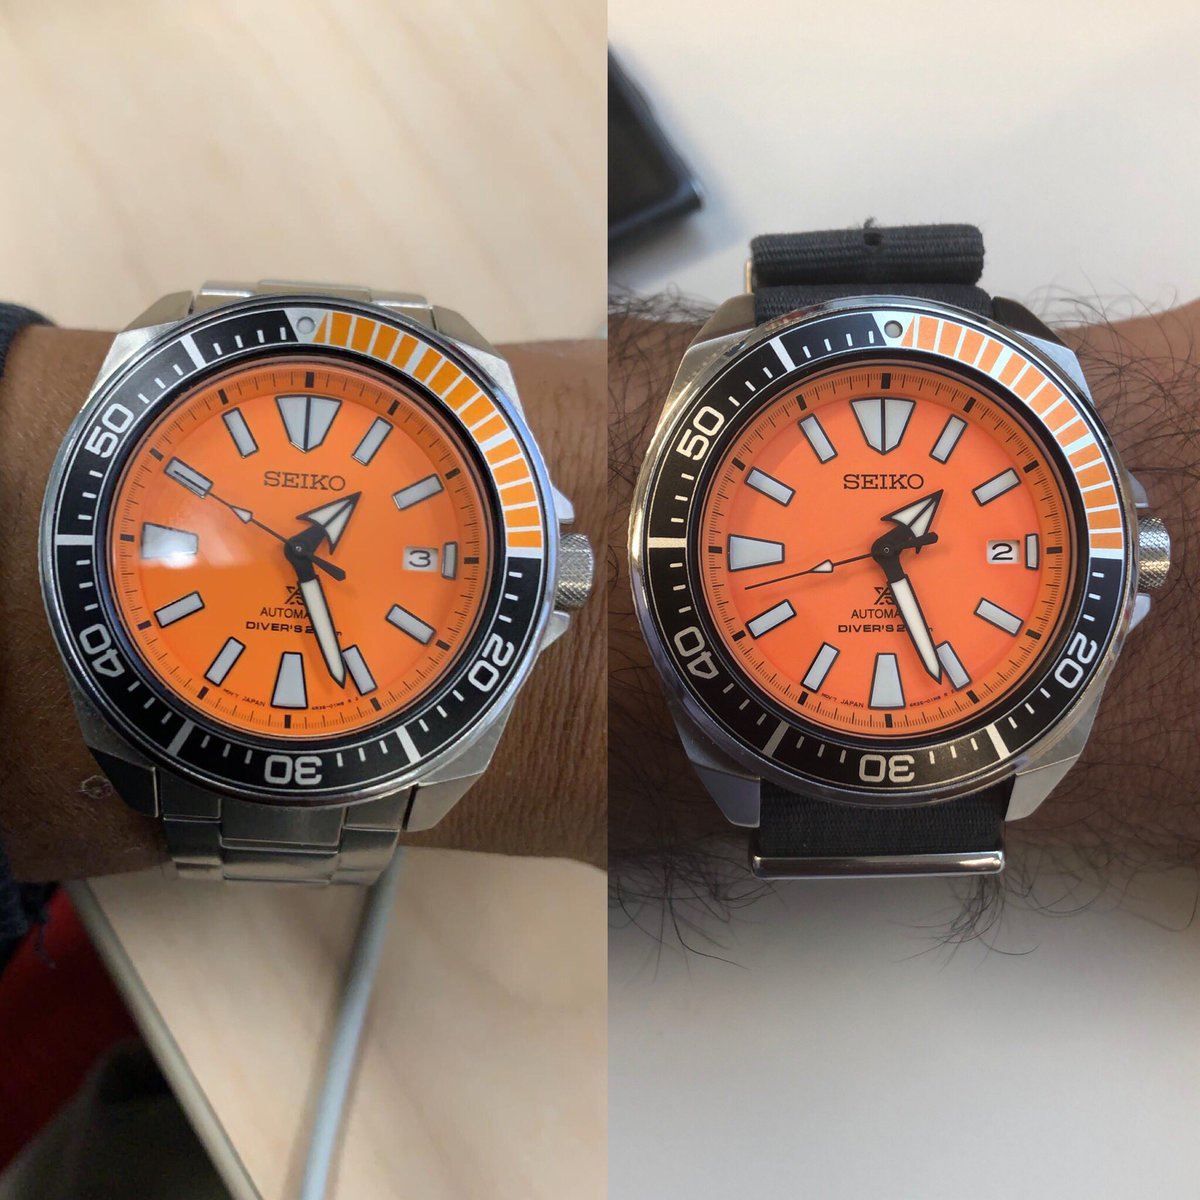 @sanjiv_l finally joins the Samurai clan... great to finally have the watch of the podcast on our wrists - even if it's a few hundred miles apart! Check out his thoughts on the Seiko SPRC07 and other releases in Episode 20 #Seiko #SeikoSamurai #SRPC07 #OrangeSamurai @seikowatches https://t.co/l4uNPyaOdI